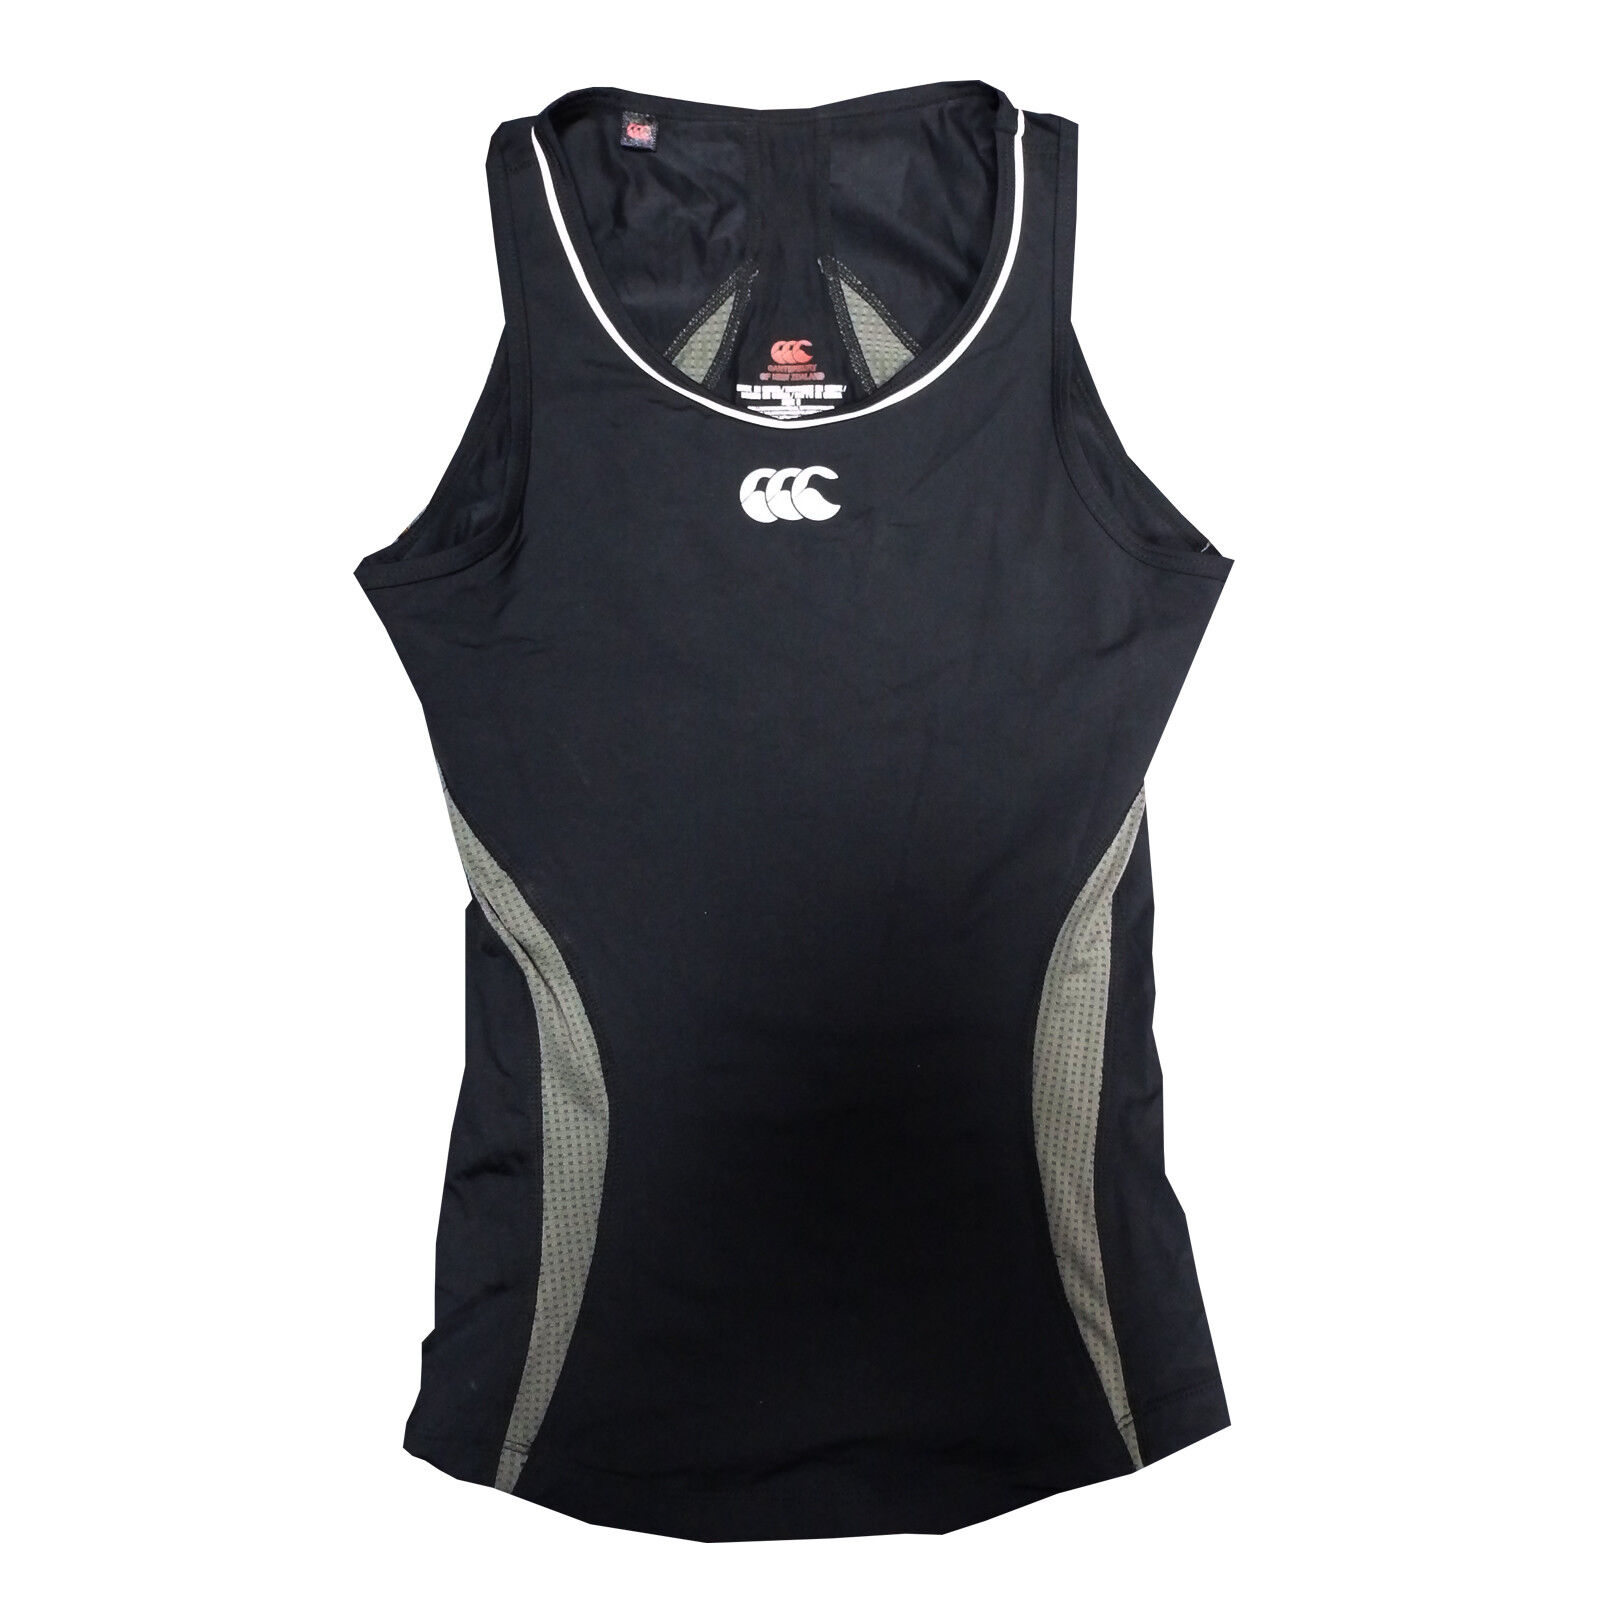 76760553524a Canterbury Baselayer Hot Workout Vest Ladies Gym Top CCC New